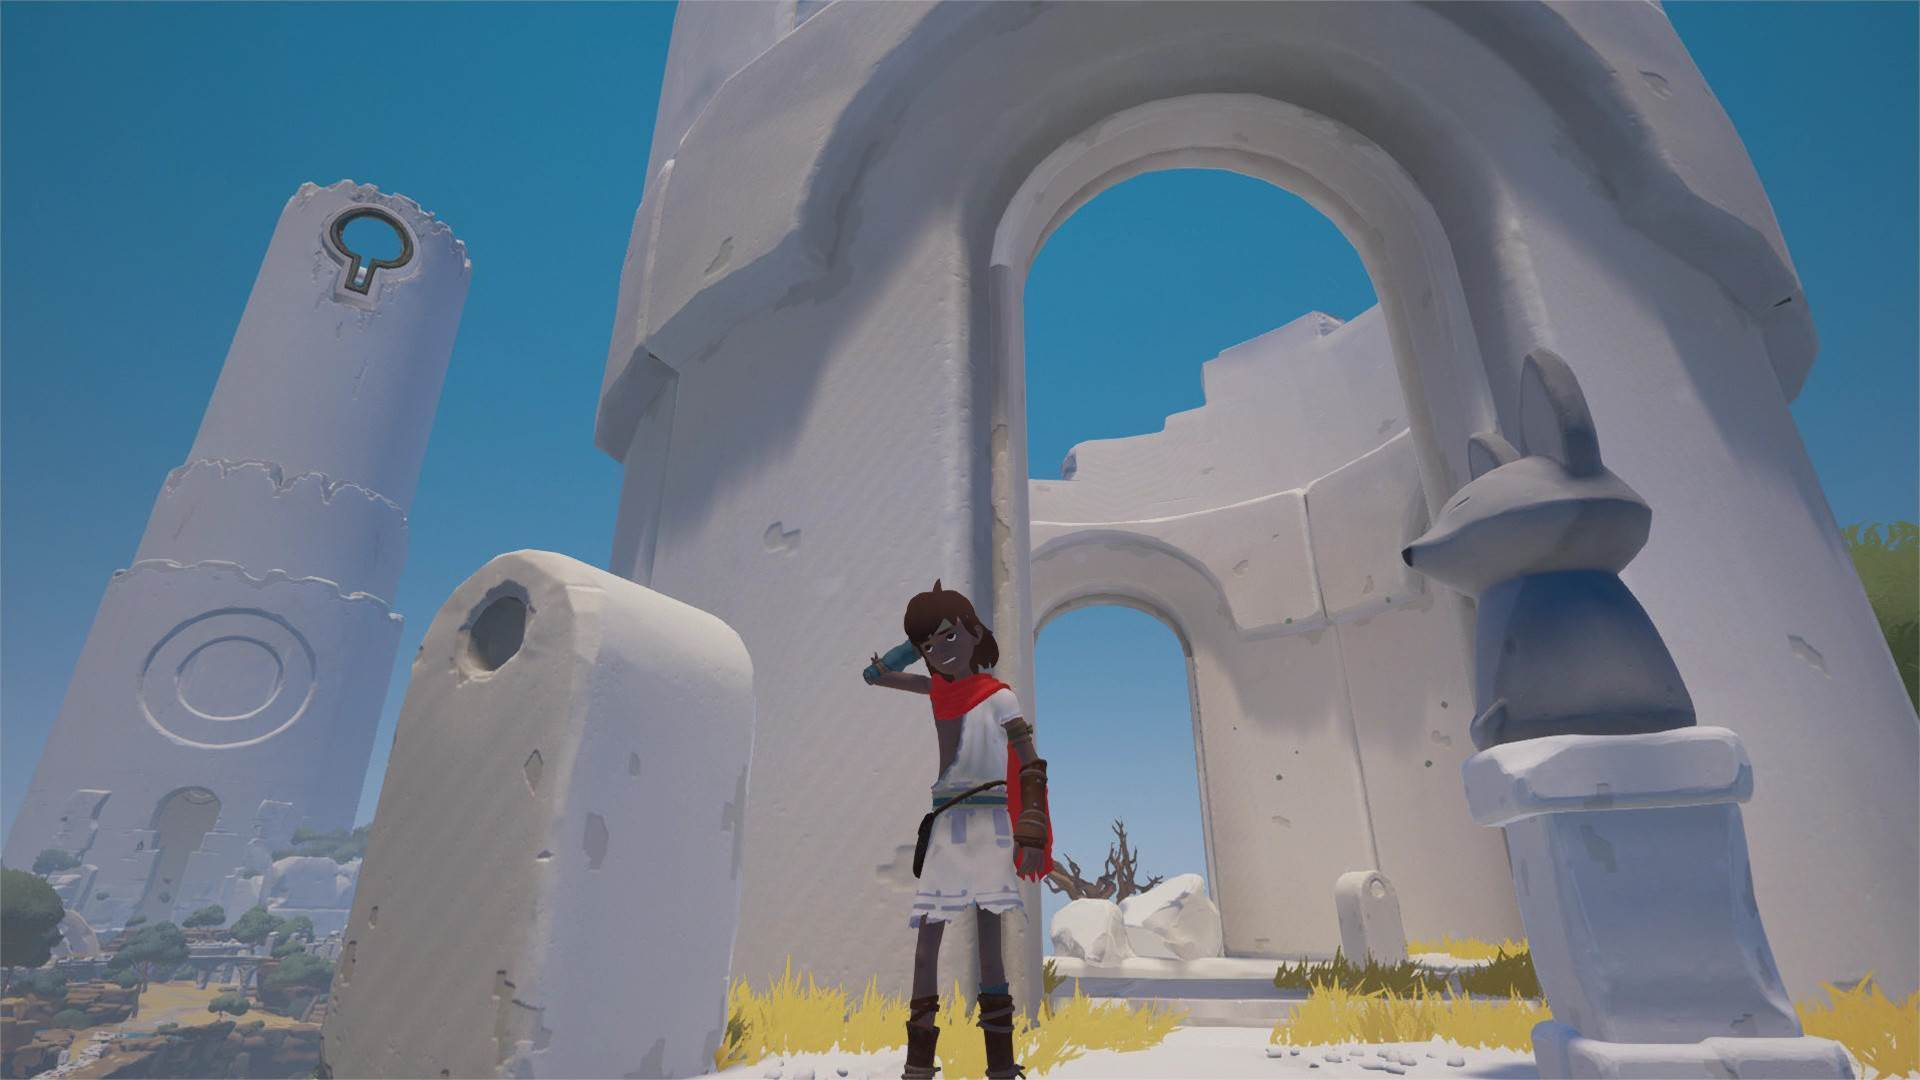 PlayStation Plus February games include Rime, Knack